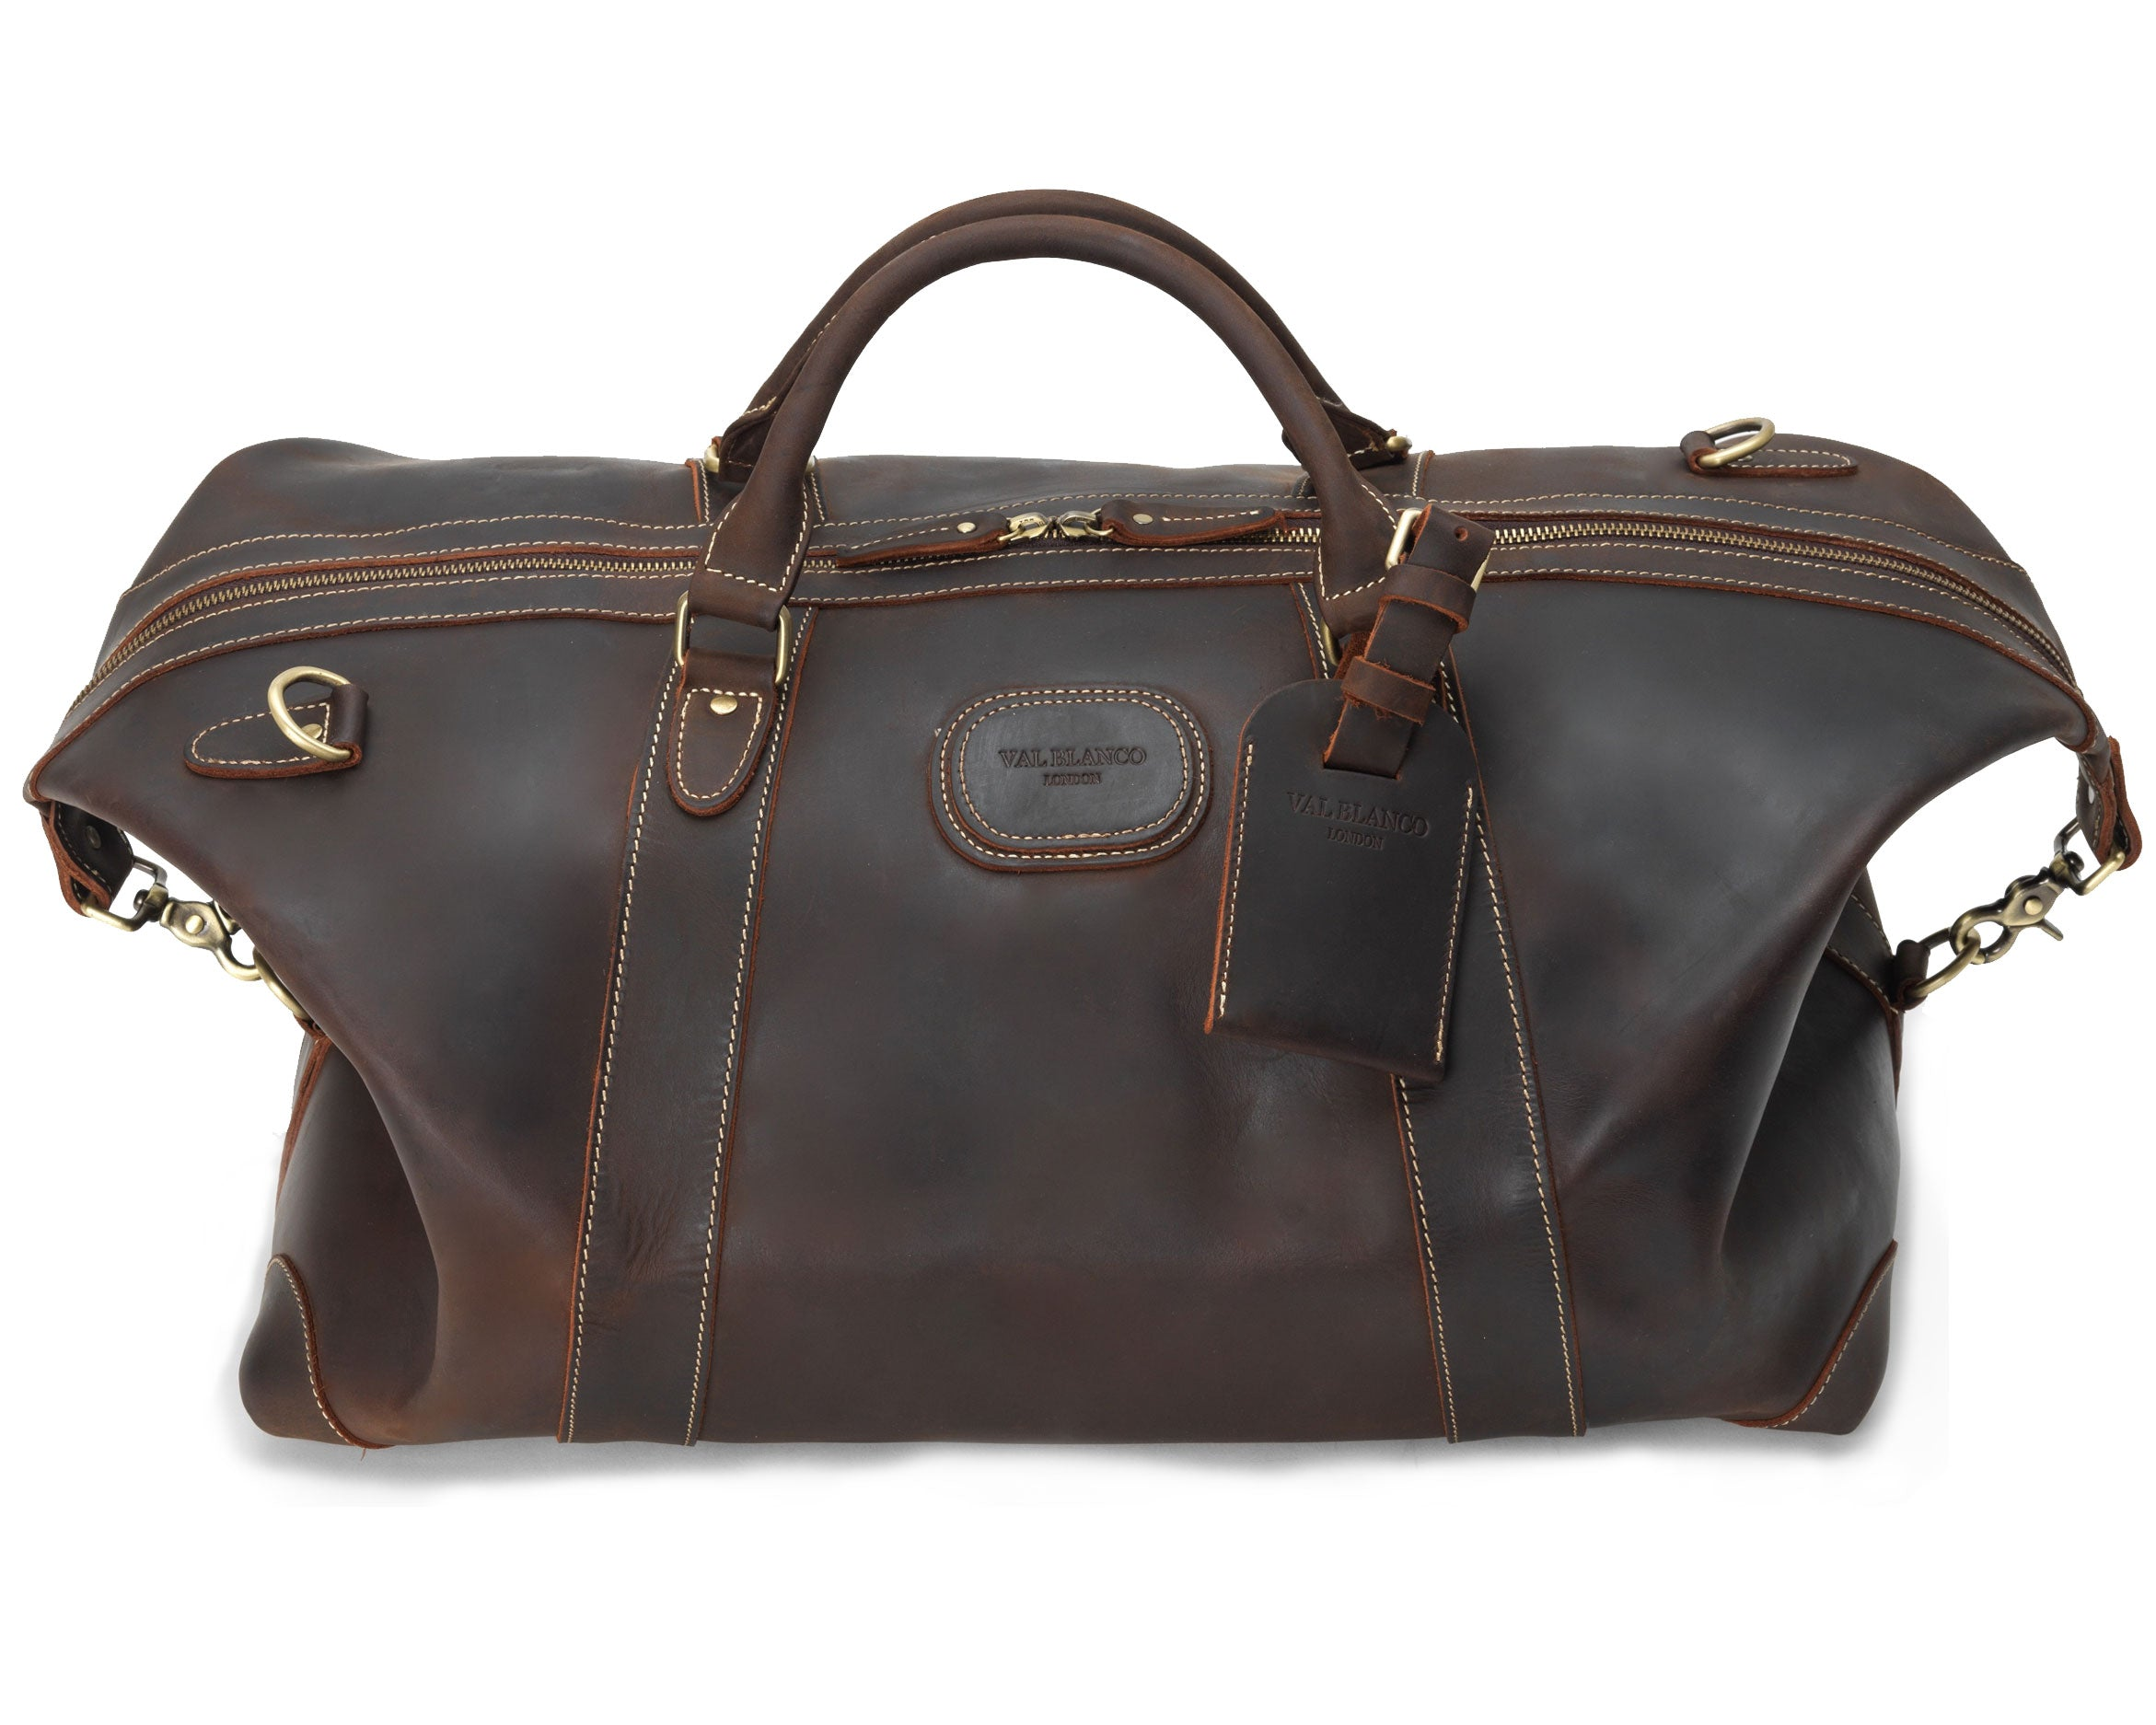 Produced with deliciously soft leather, custom selected from the finest grade hides for a bag whose quality sets it apart from other luxury offerings